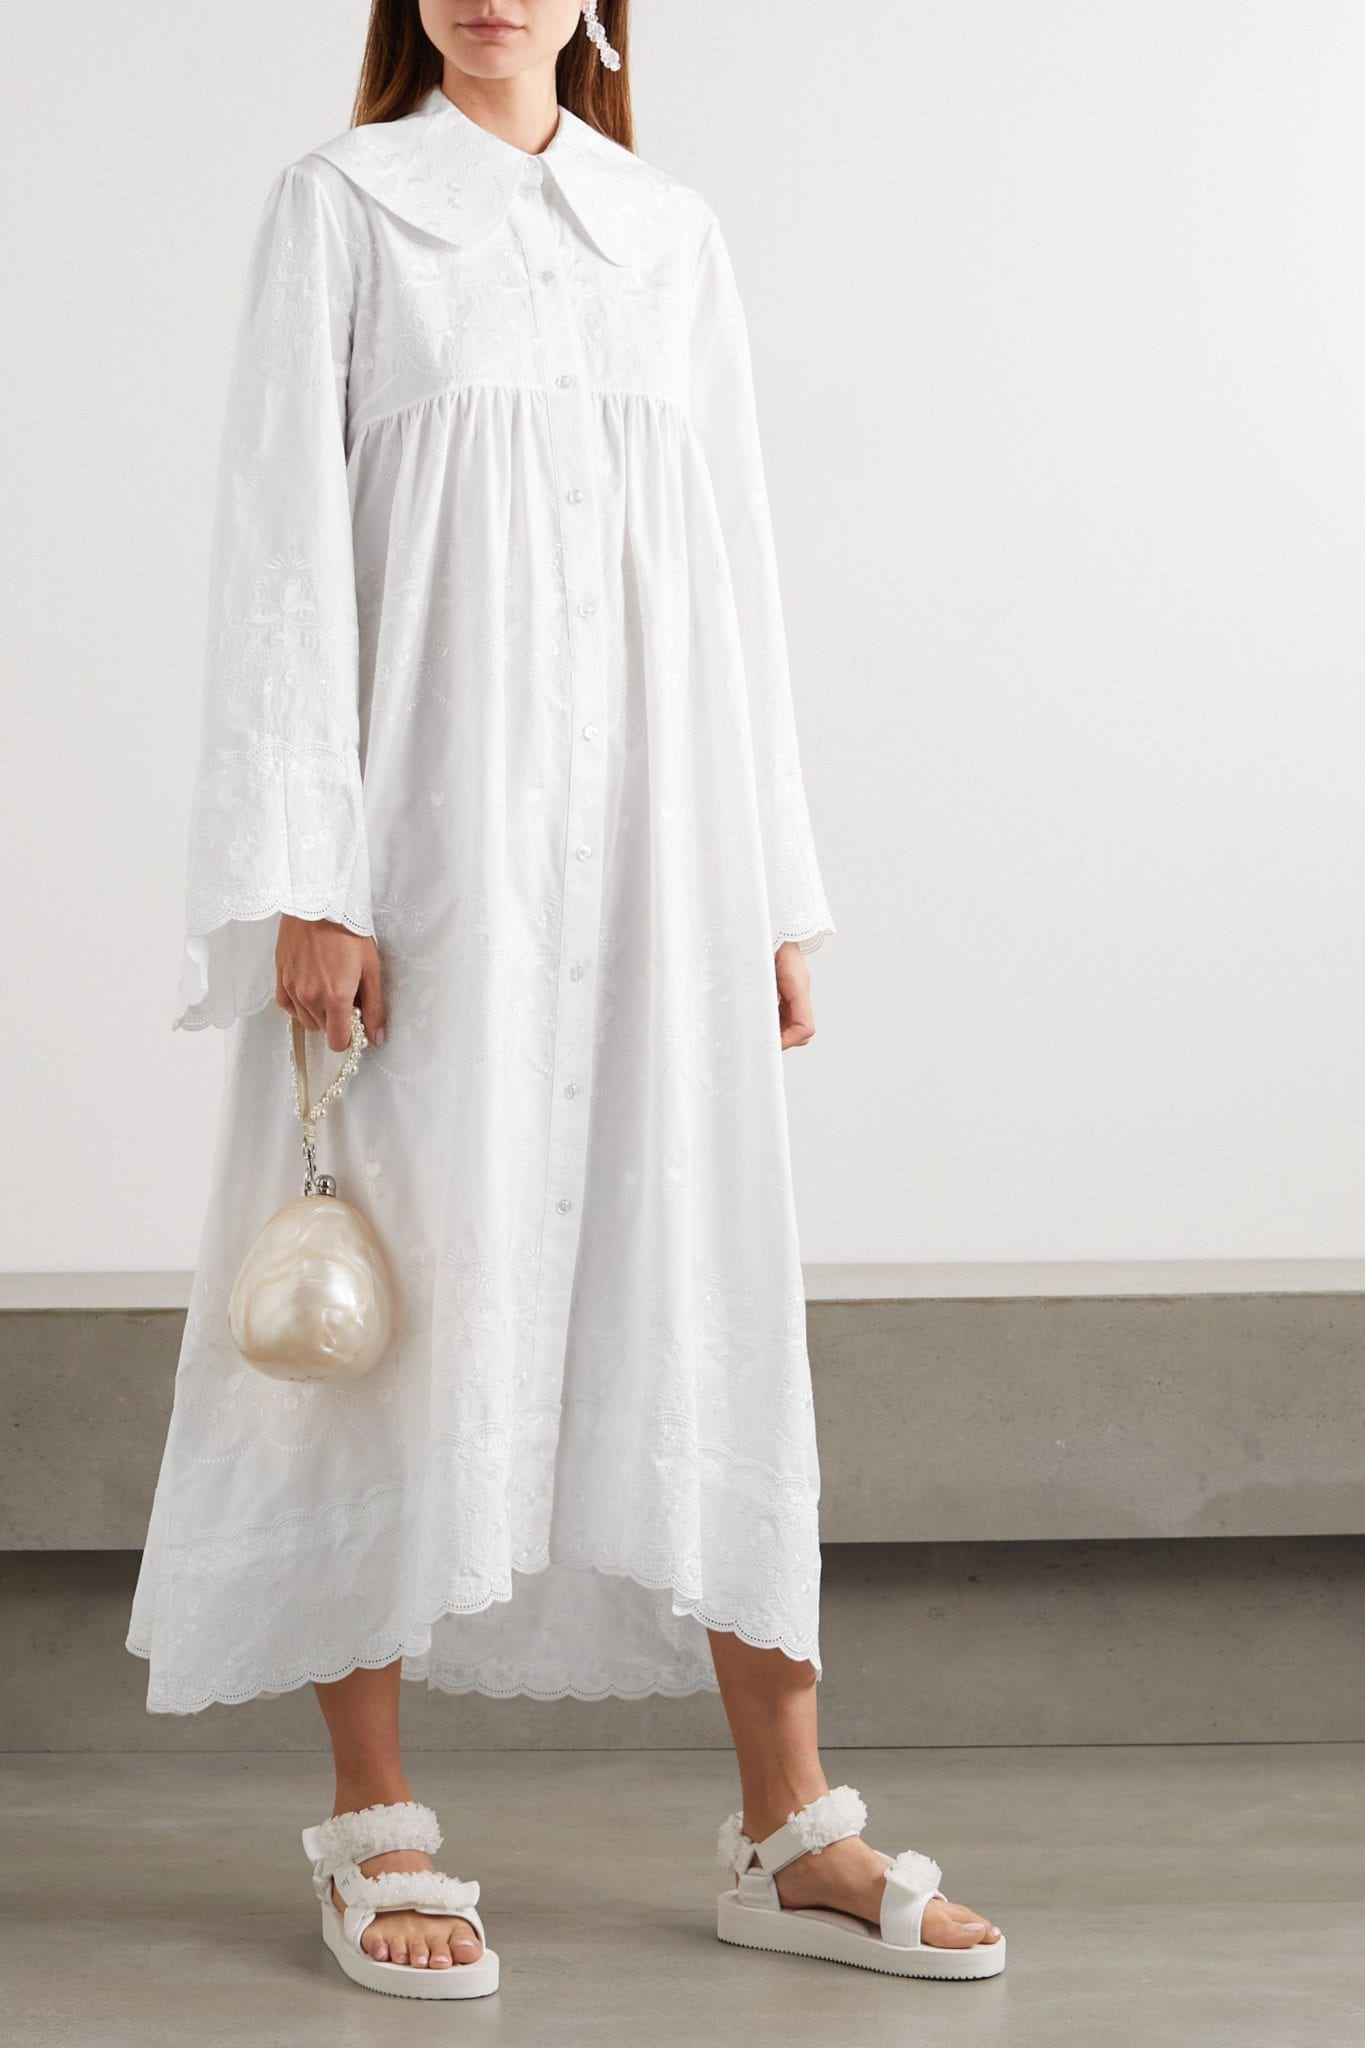 SIMONE ROCHA Scalloped Embroidered Cotton-poplin Maxi Dress